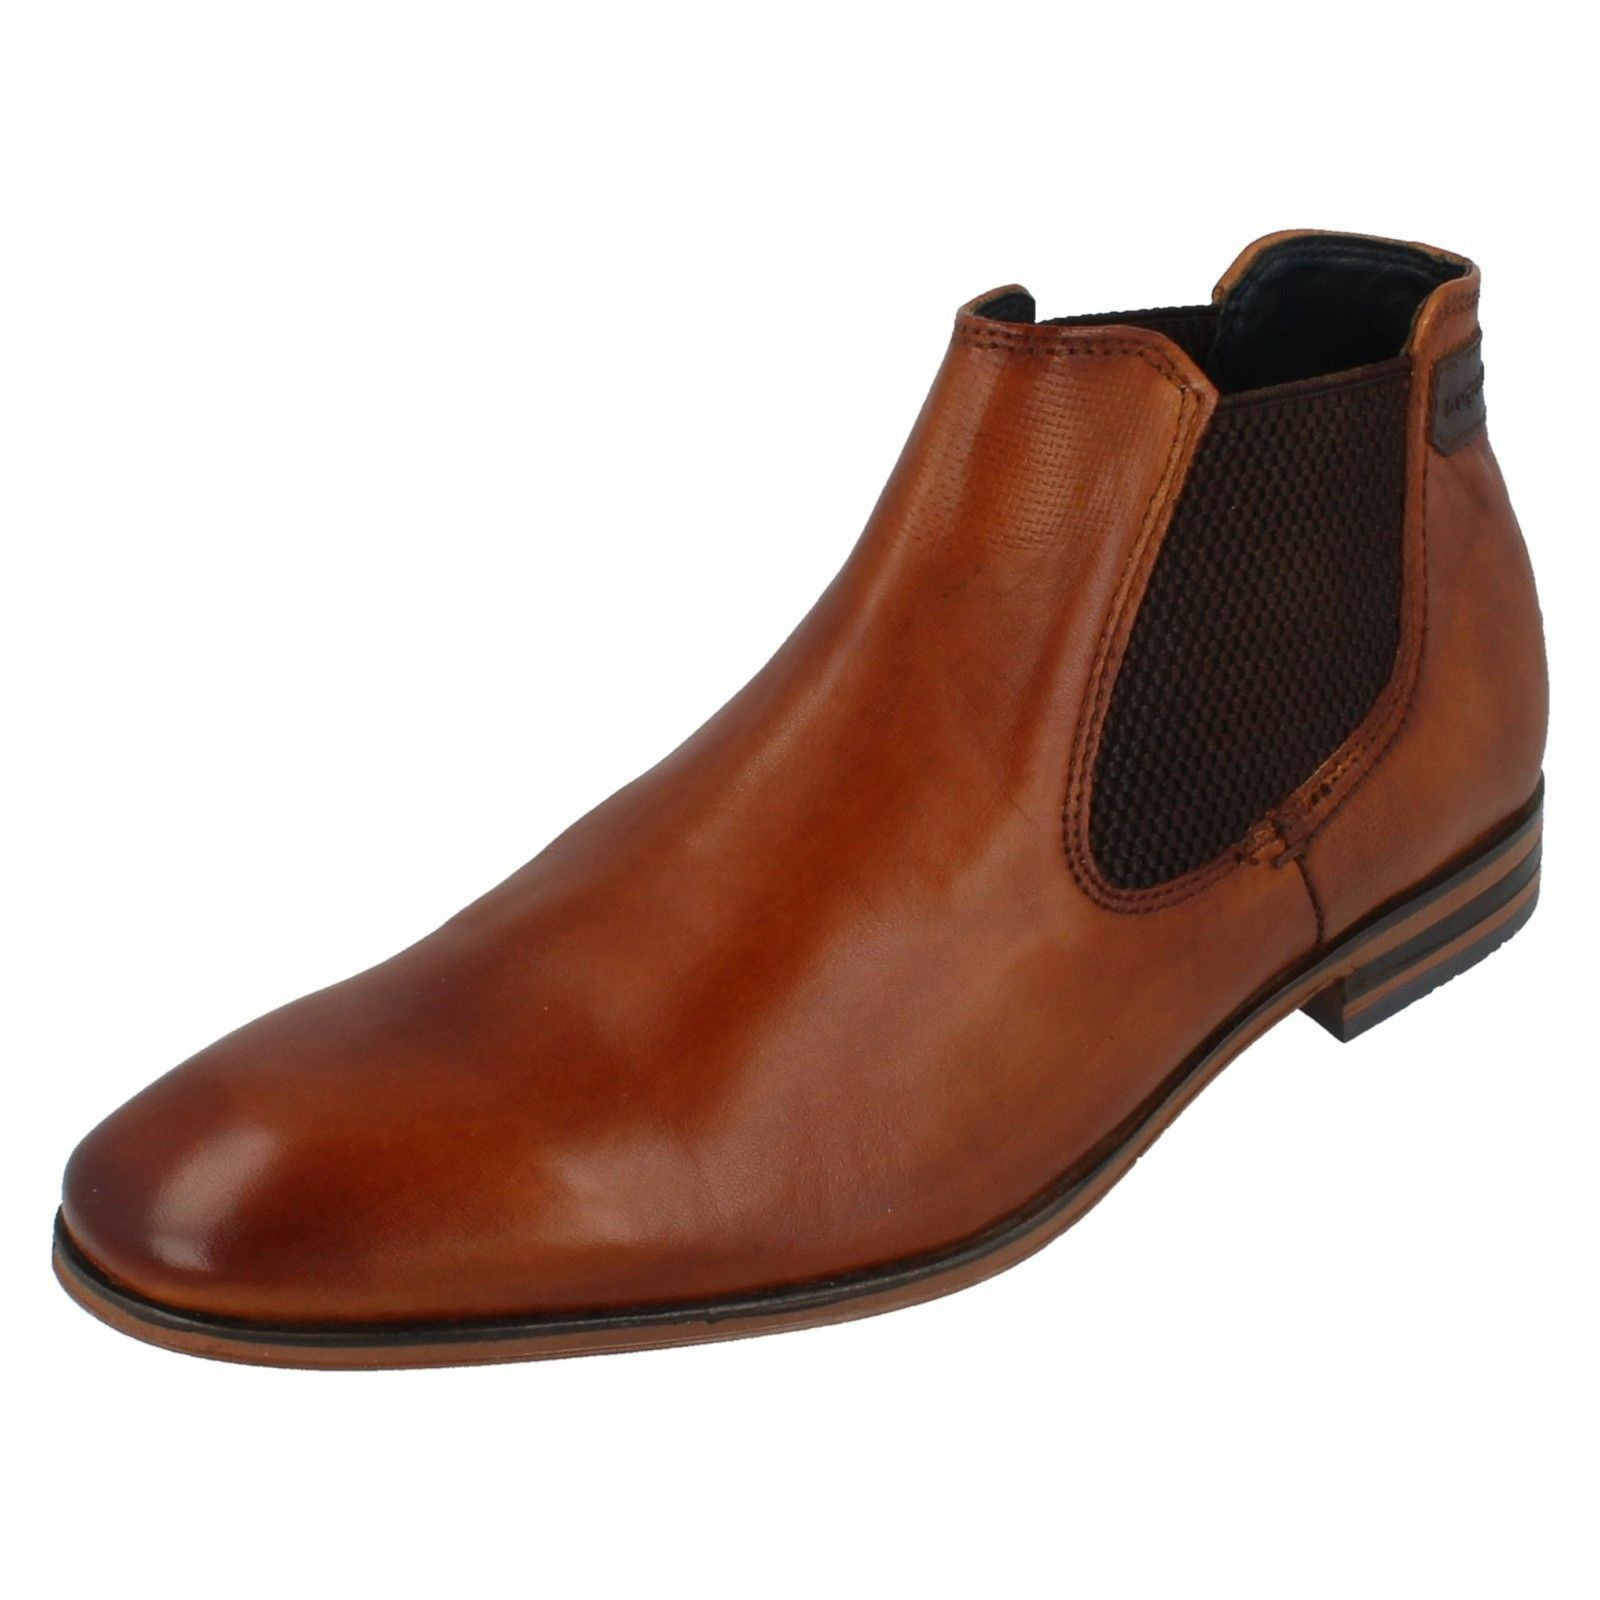 MENS BUGATTI TWIN GUSSET LEATHER ANKLE BOOT 311-10120 4100